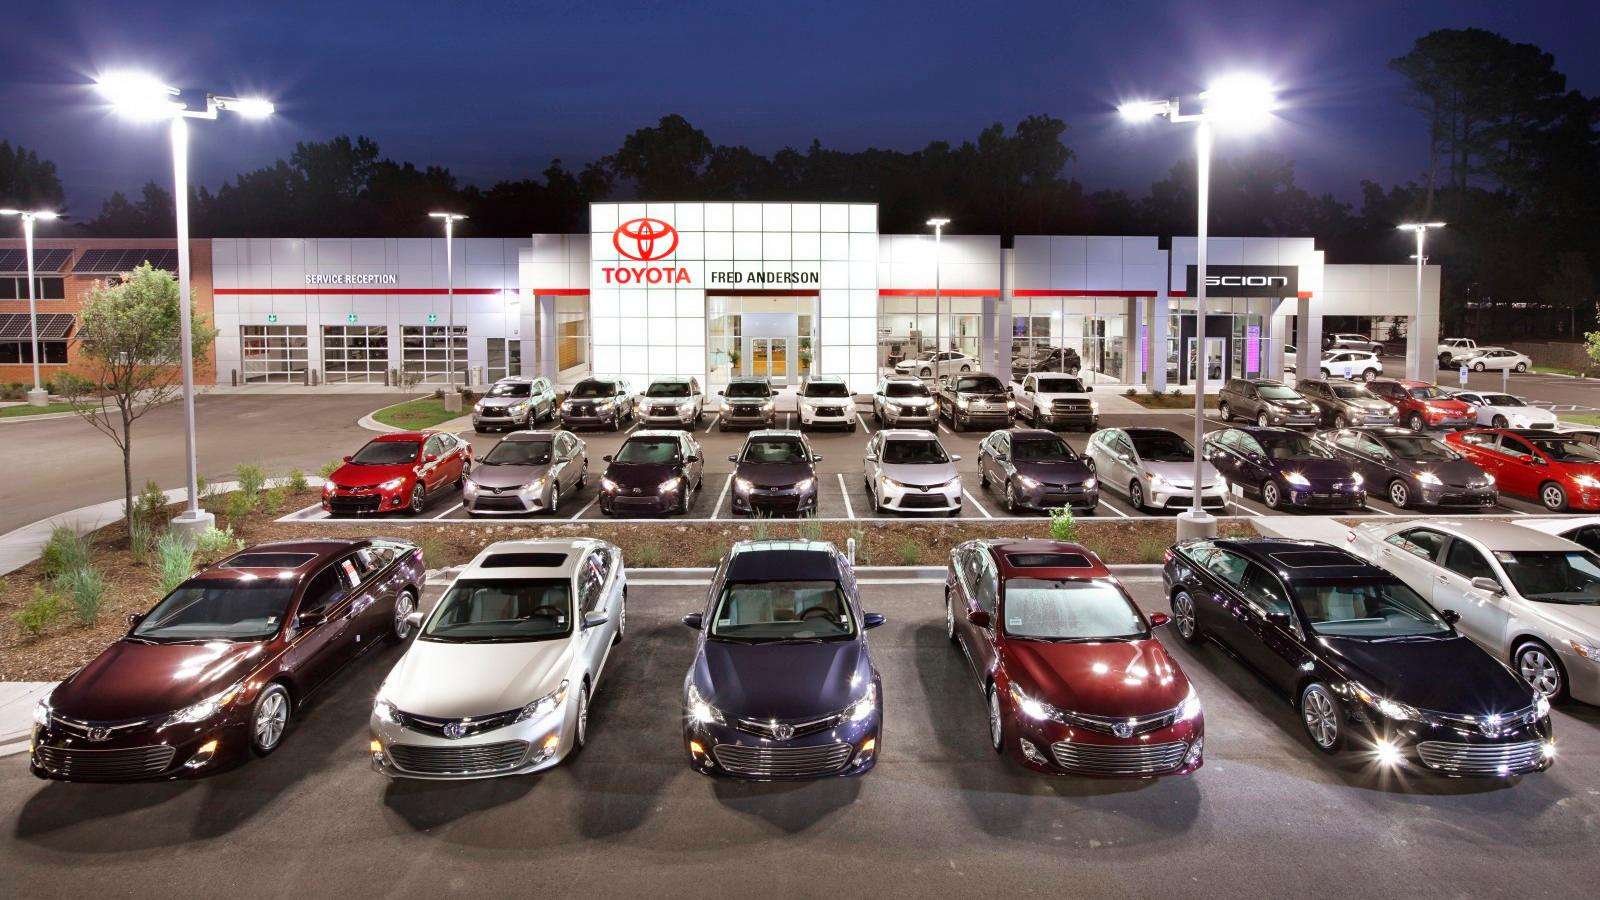 Fred Anderson Toyota Of Columbia West Columbia South